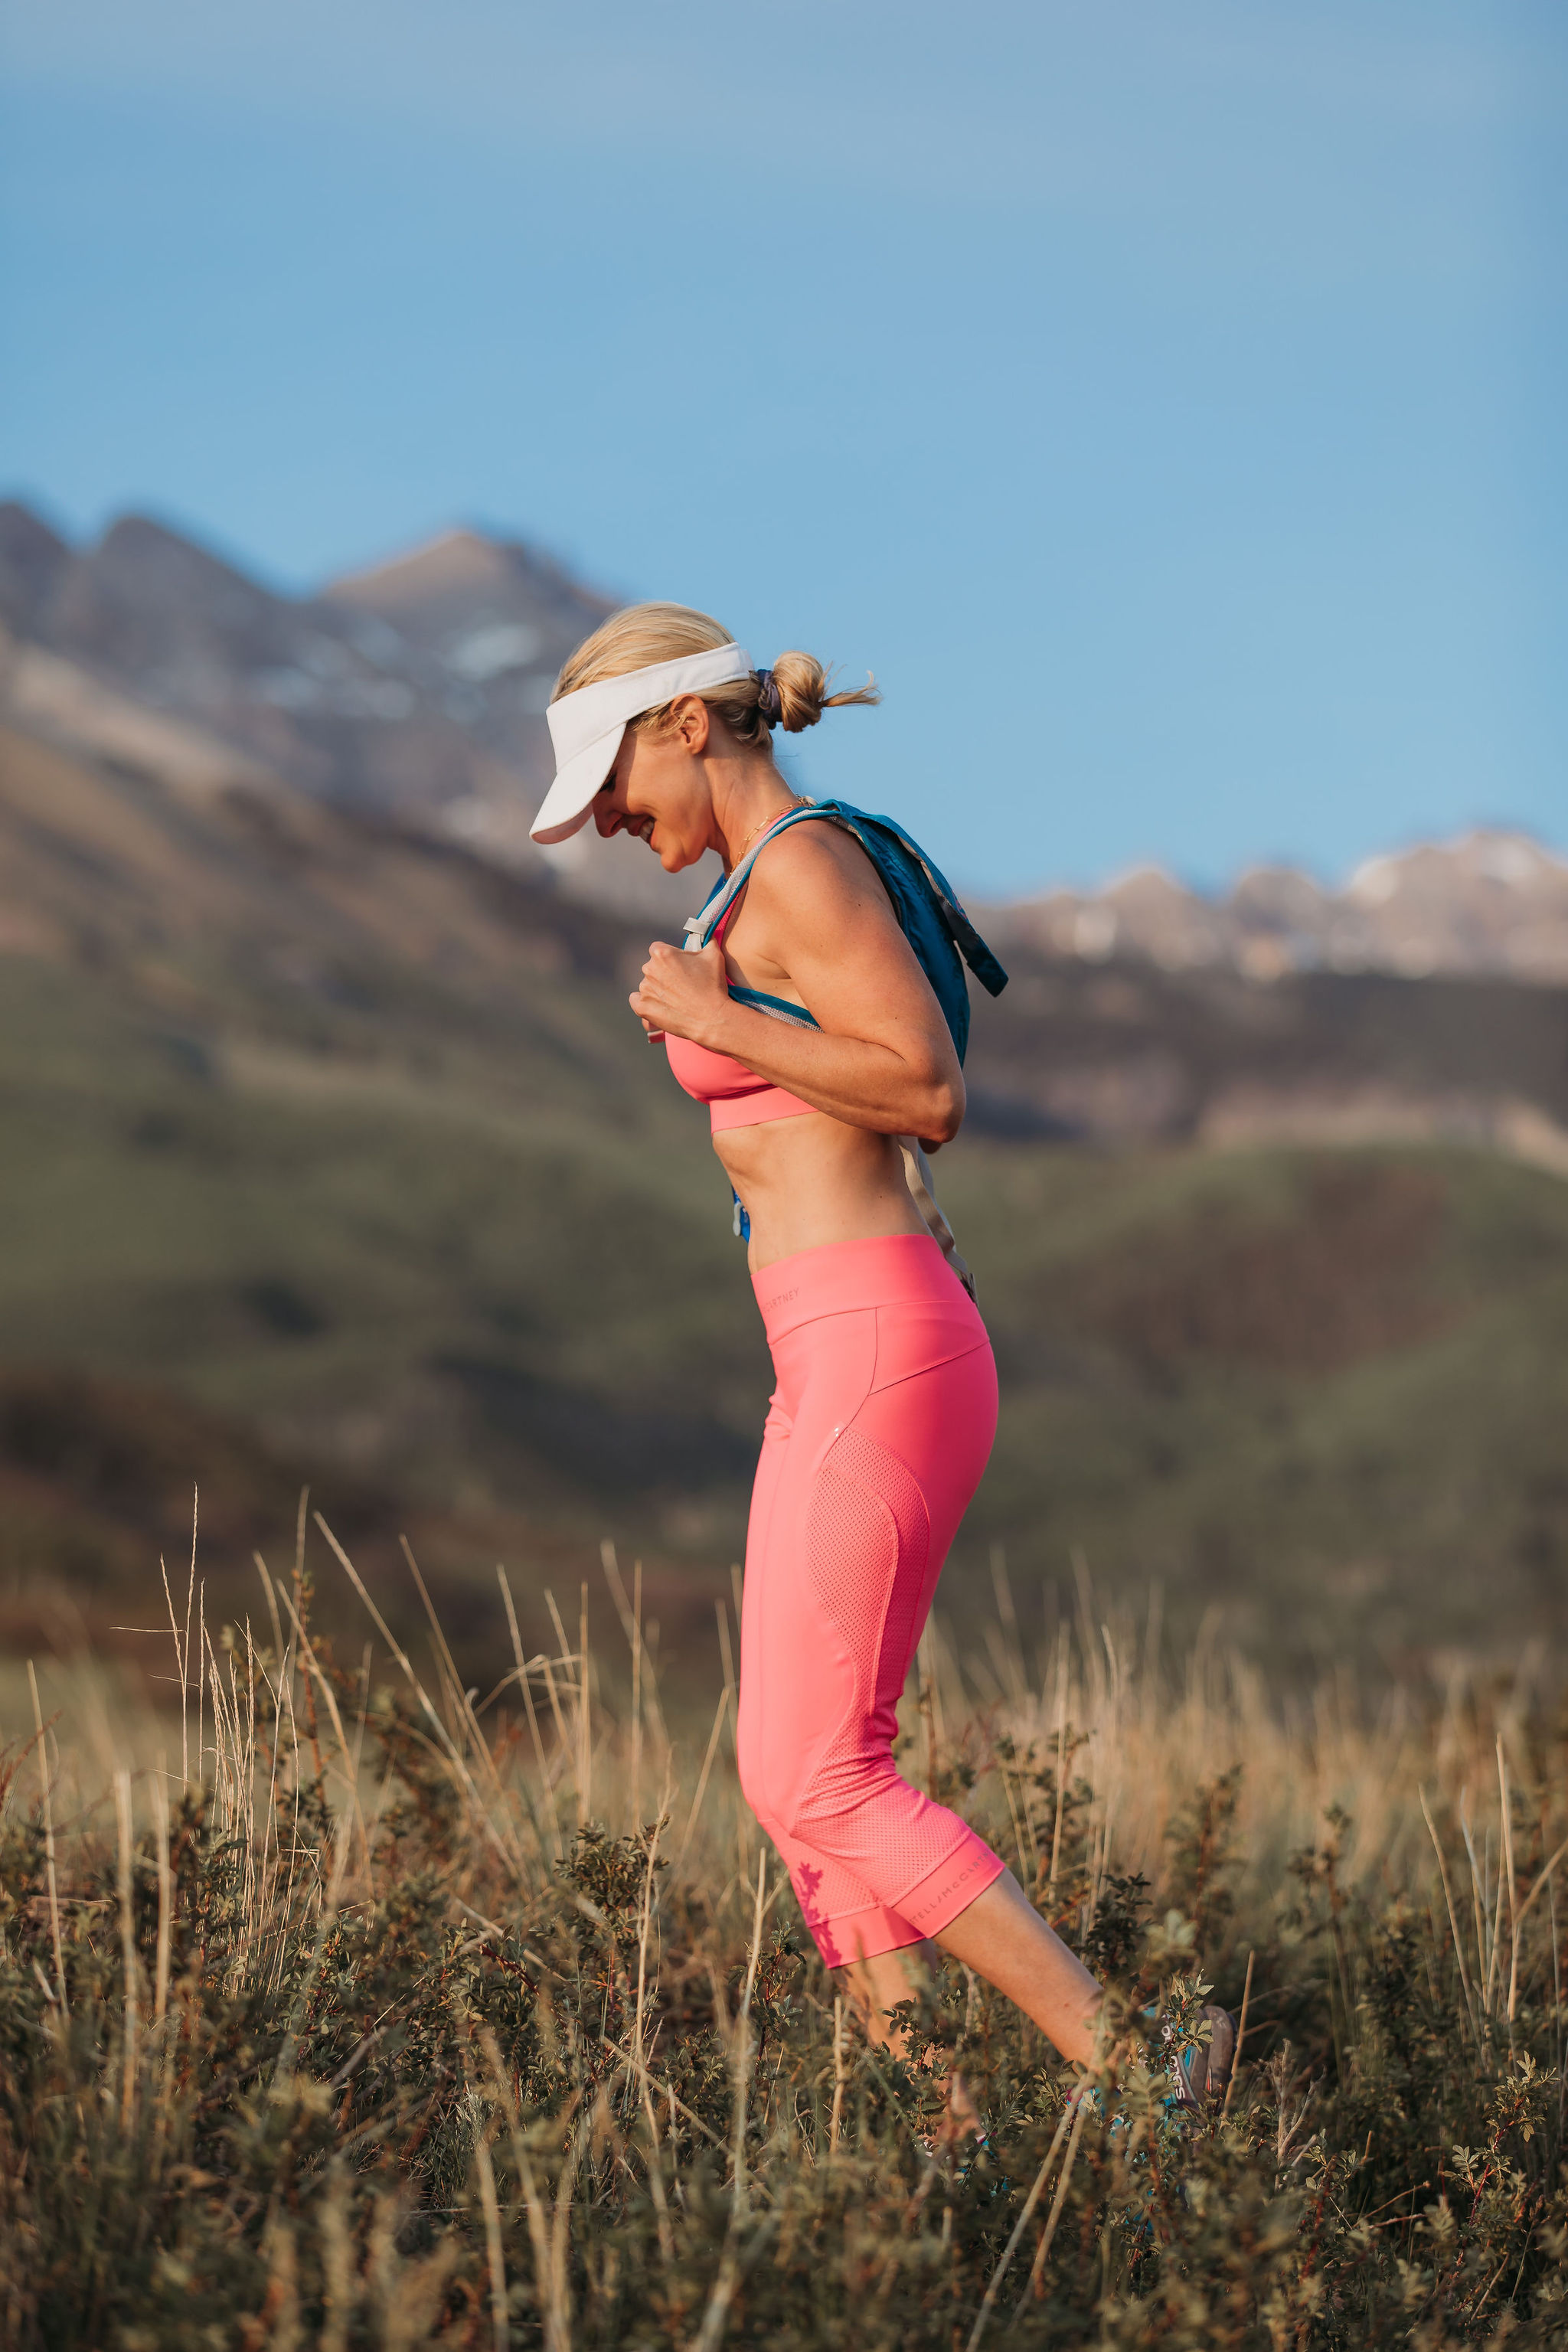 staying in shape over 40 key to feeling vibrant and youthful